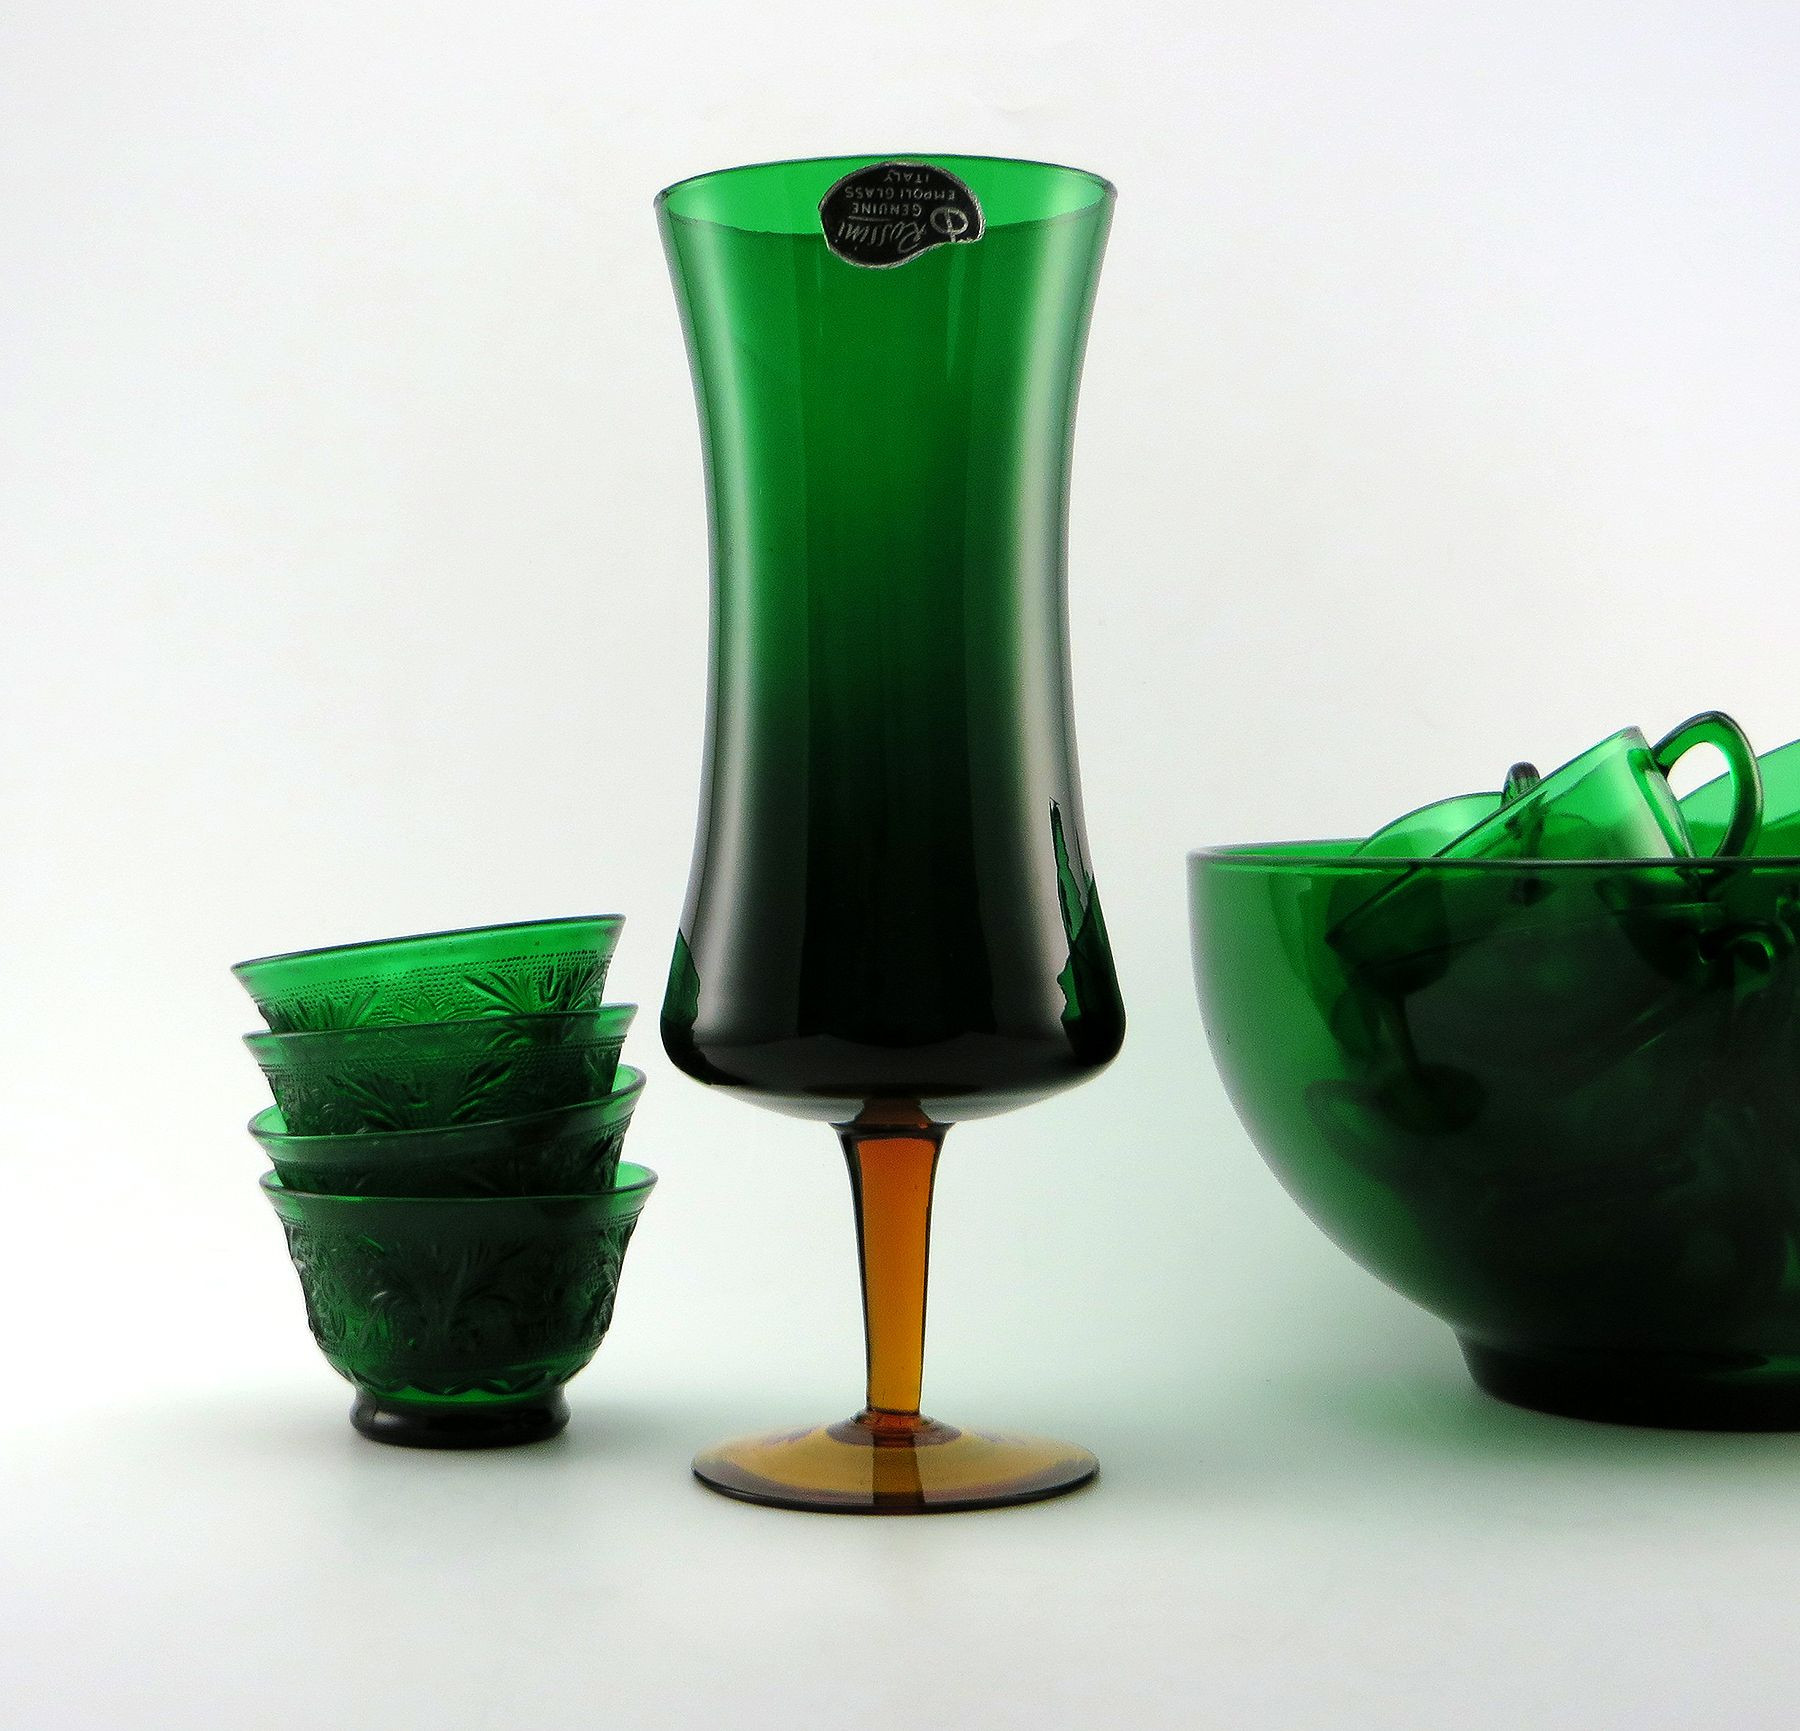 decorative ceramic vases of green ceramic vase inspirational rossini empoli art glass retro in green ceramic vase inspirational rossini empoli art glass retro modern vase with label retro art glass